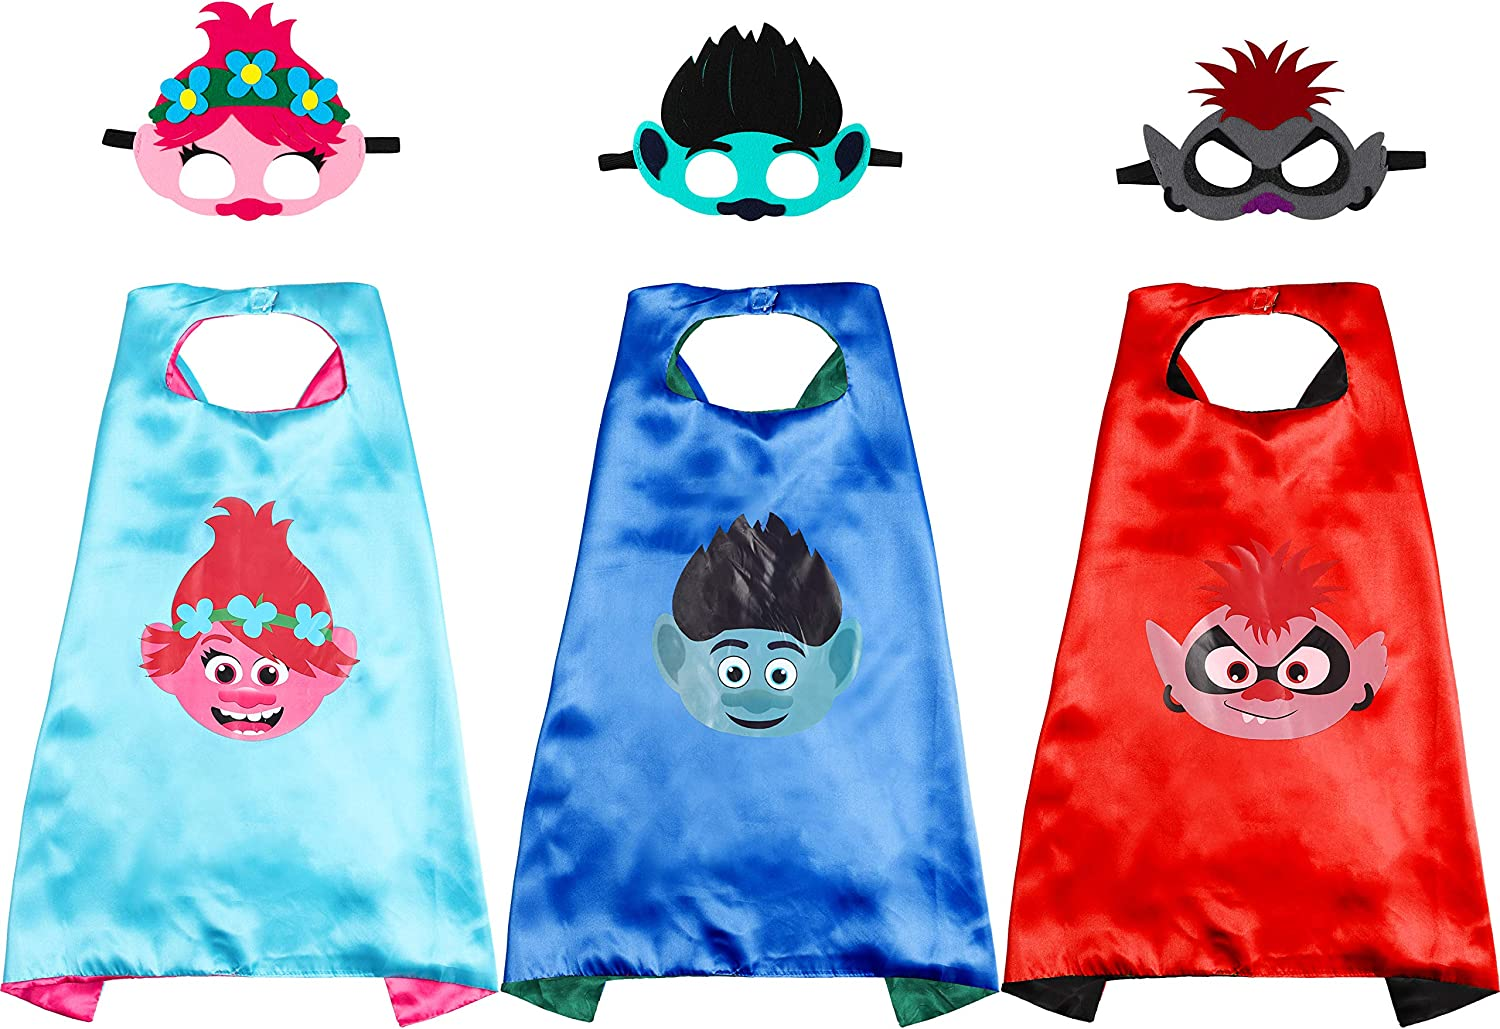 ANGOLIO 3 Pcs Trolls Capes with Masks Dress up Costumes Halloween Christmas Cosplay Festival Birthday Party Favors for Kids